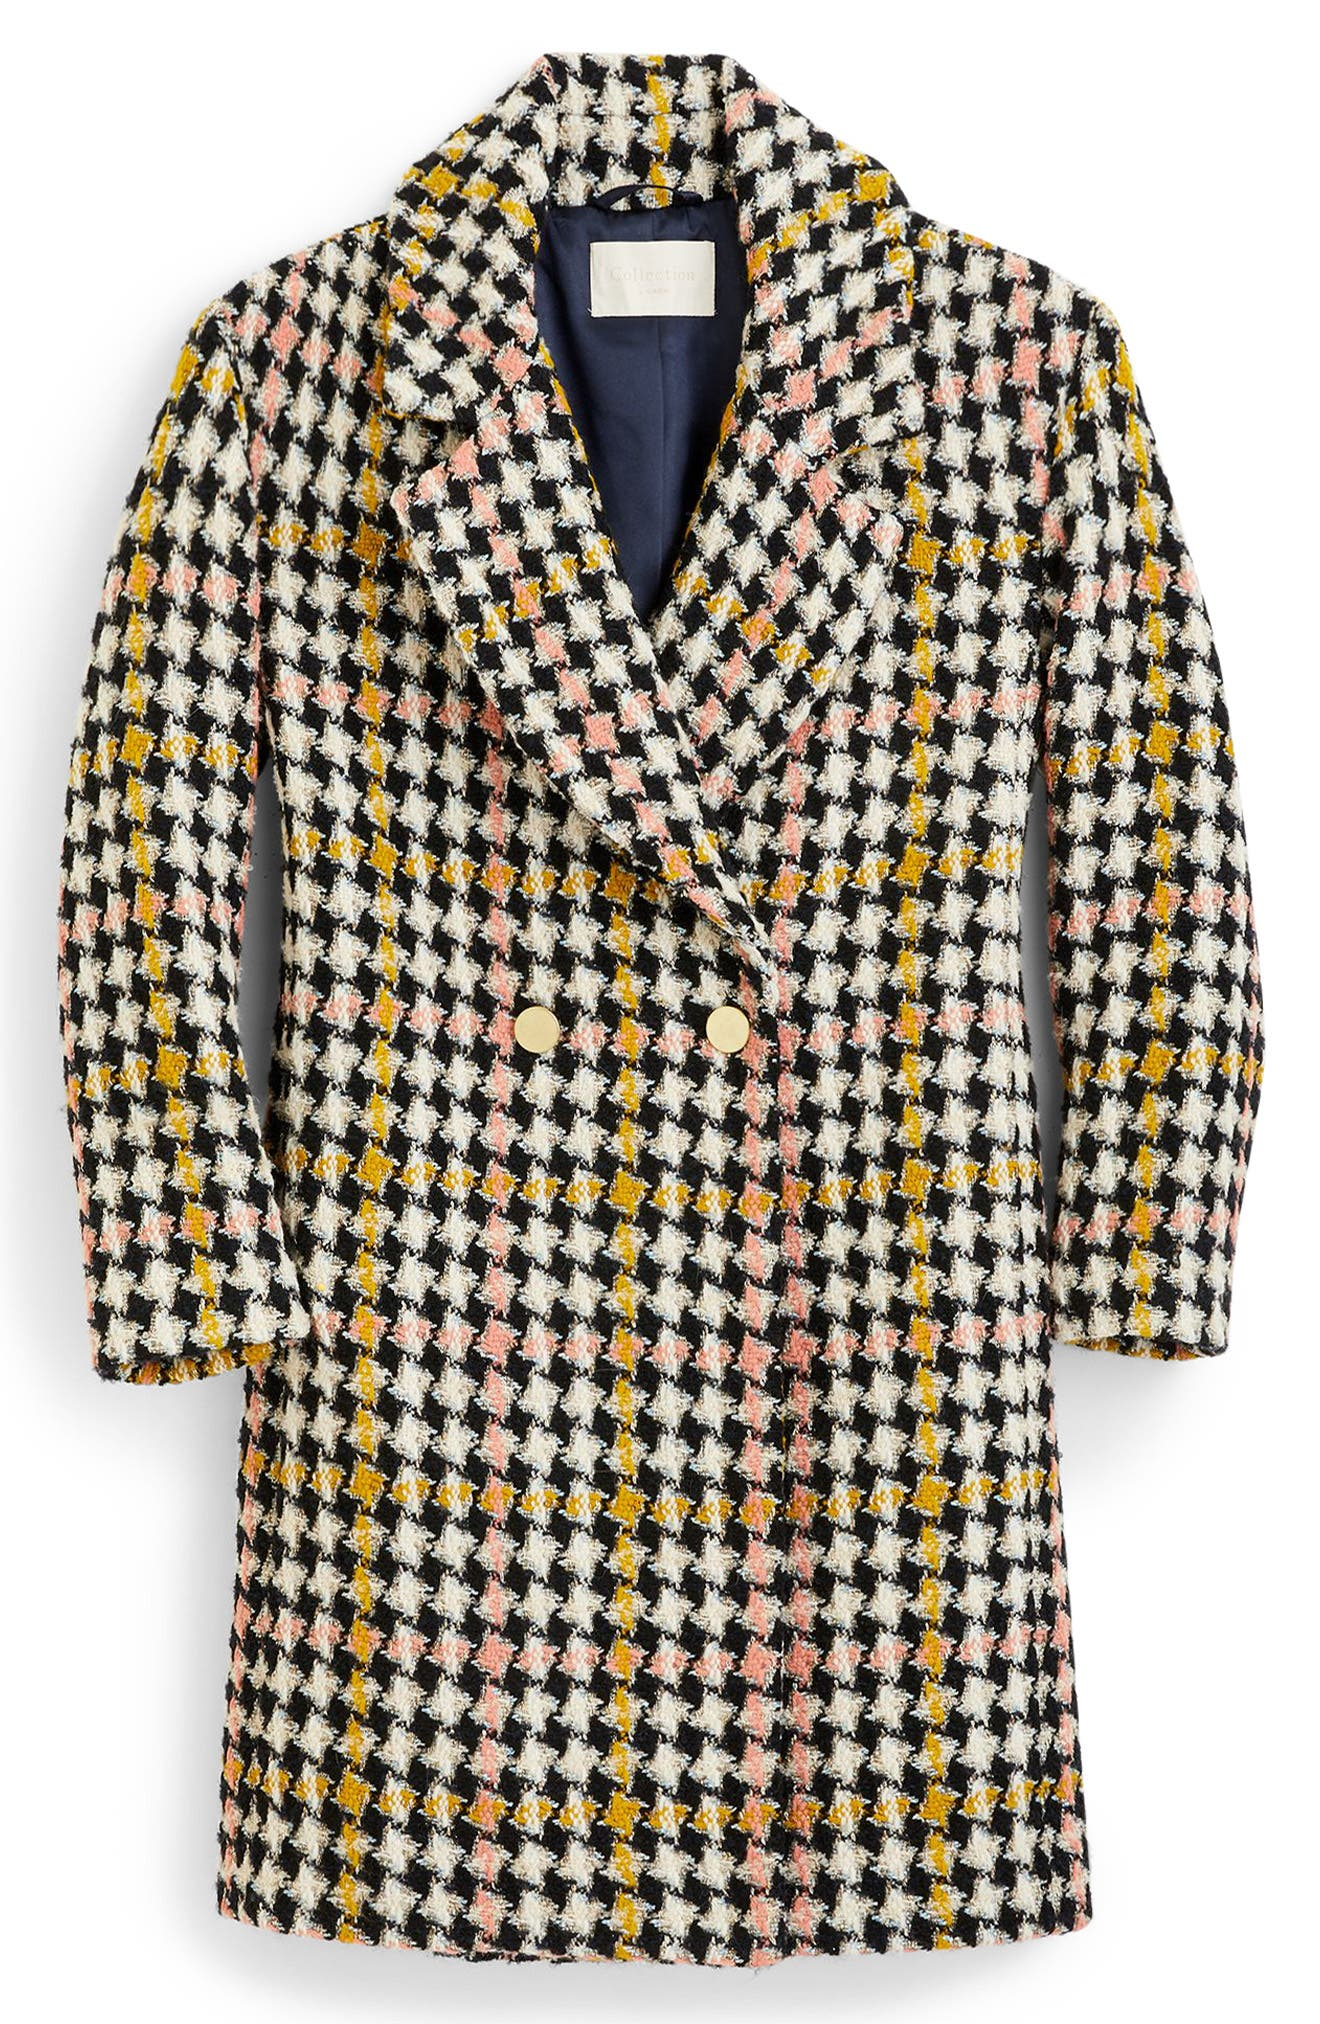 Collection Oversize Lurex<sup>®</sup> Tweed Coat,                             Alternate thumbnail 6, color,                             650